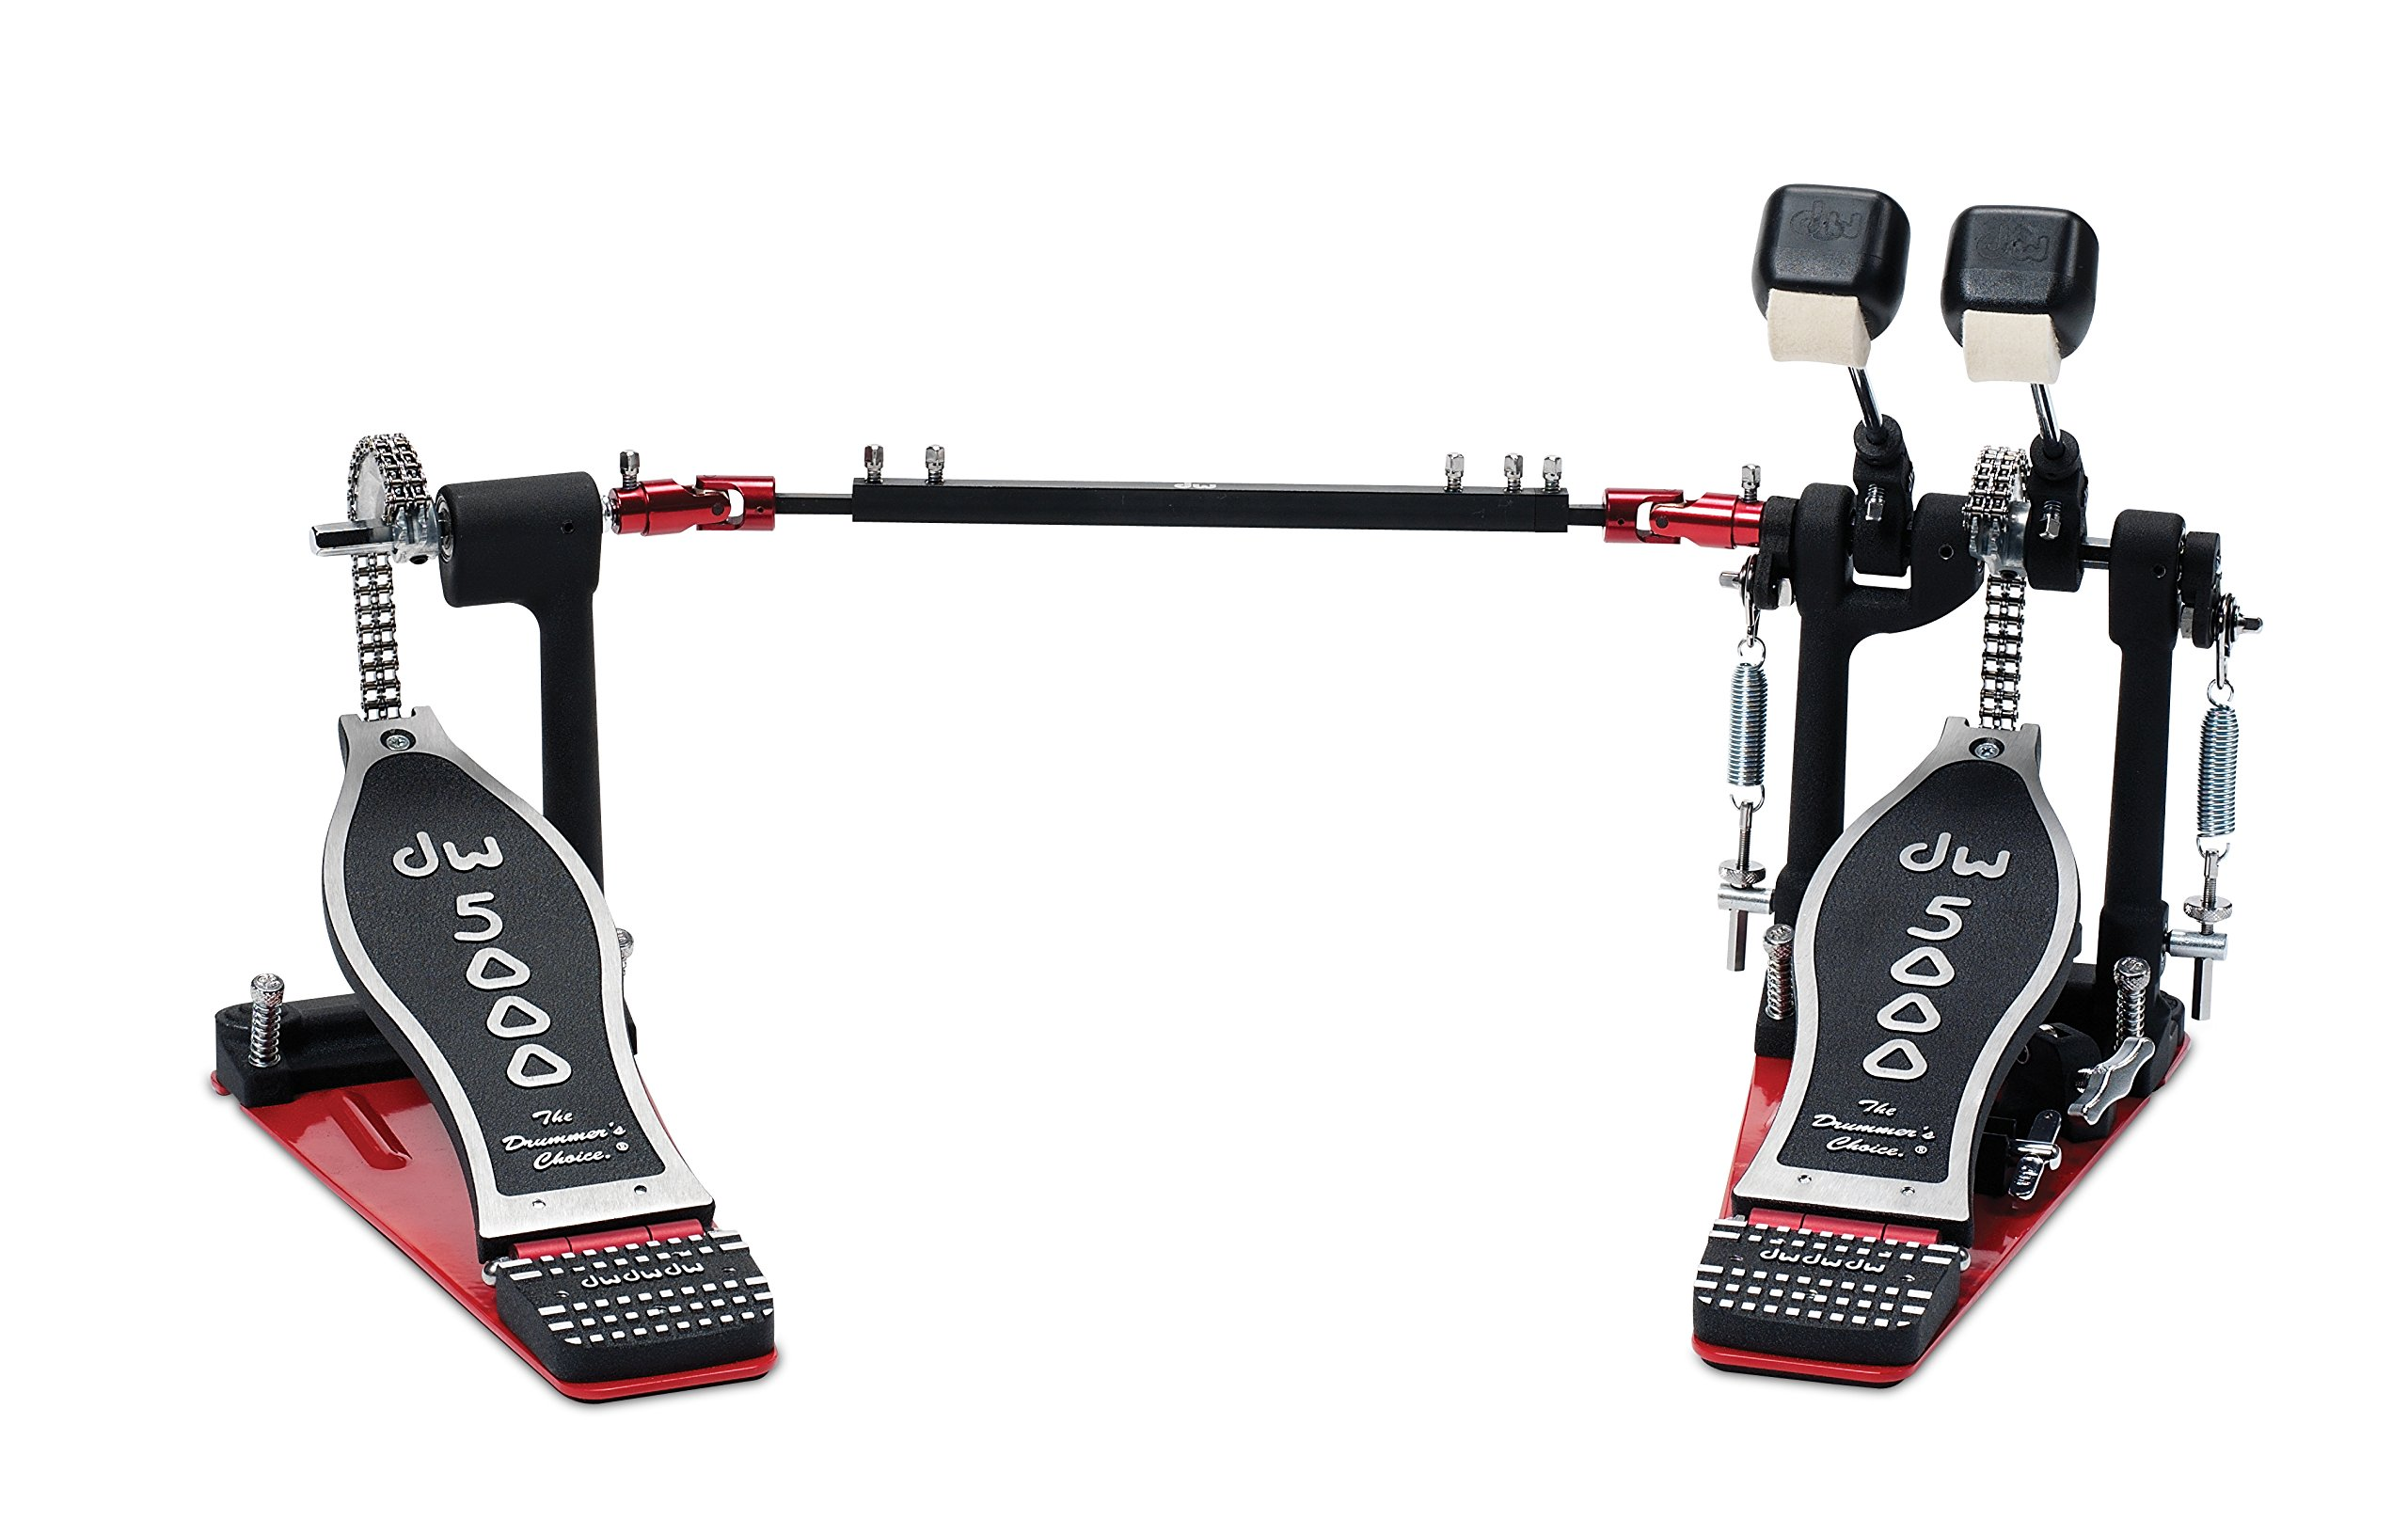 DW 5002 Accelerator Double Bass Pedal by Drum Workshop, Inc.